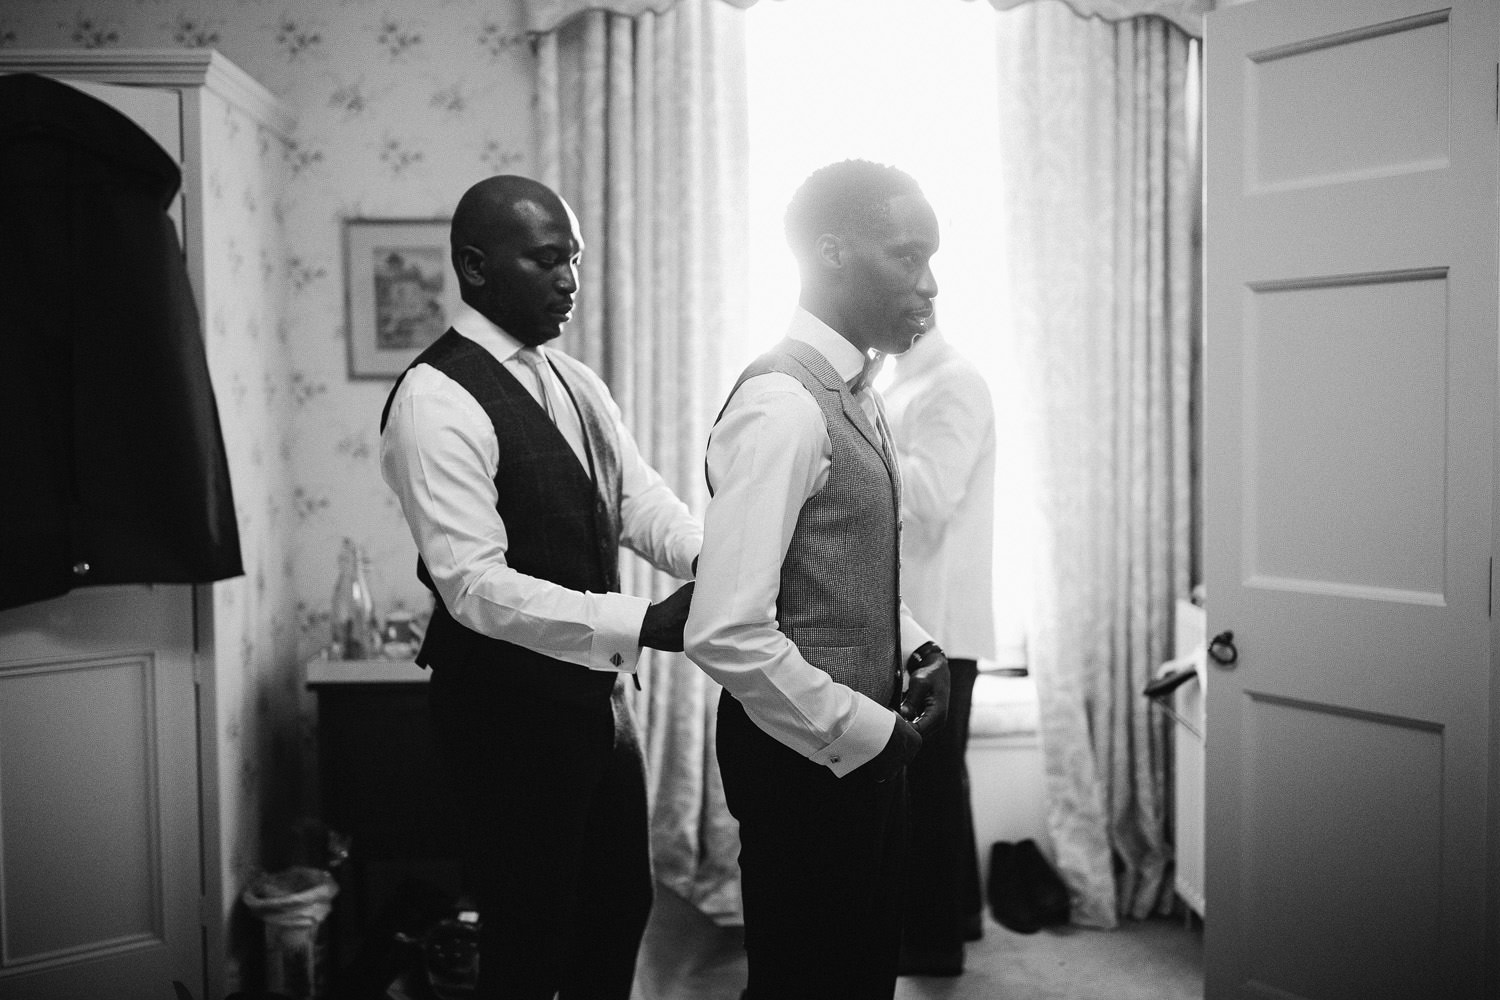 An usher ties up the back of a grooms waistcoat in a large bedroom